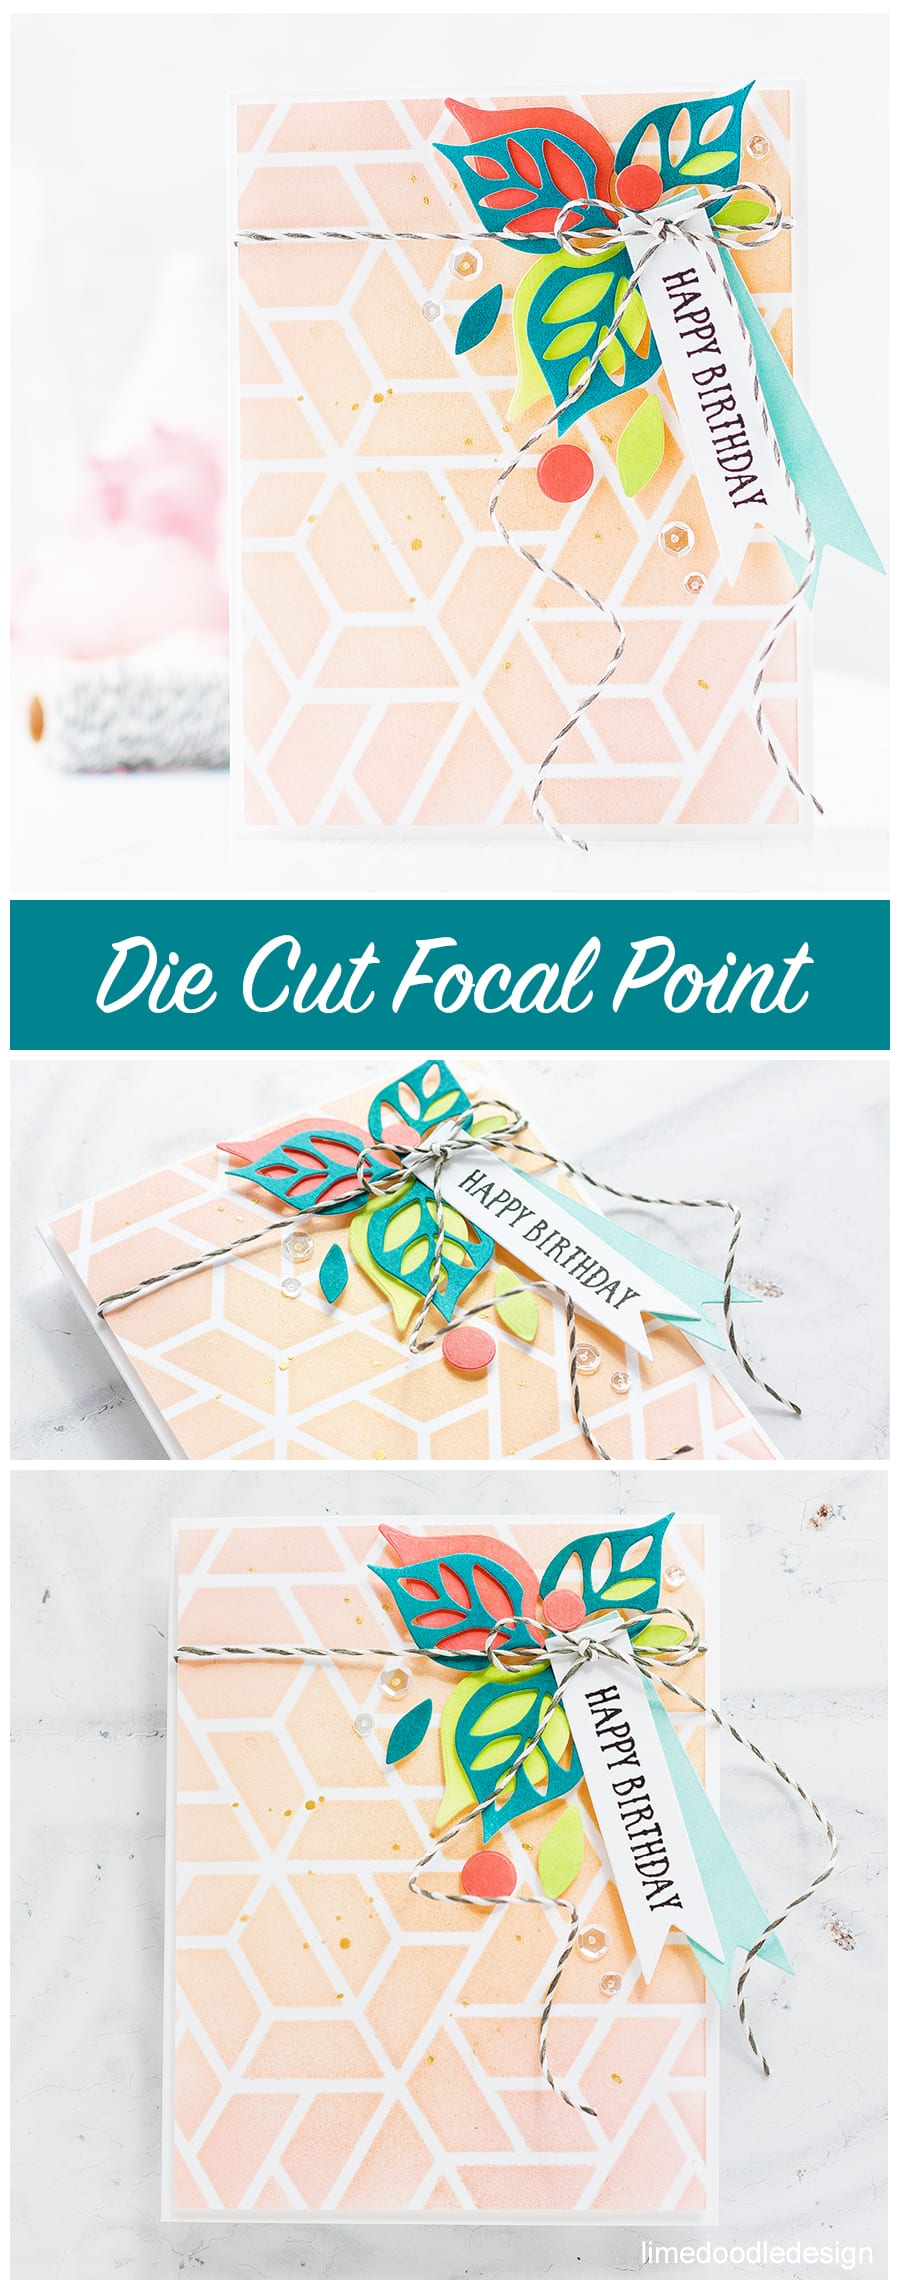 Die cut focal point birthday card by Debby Hughes. Find out more by clicking on the following link: https://limedoodledesign.com/2017/03/die-cut-focal-point/